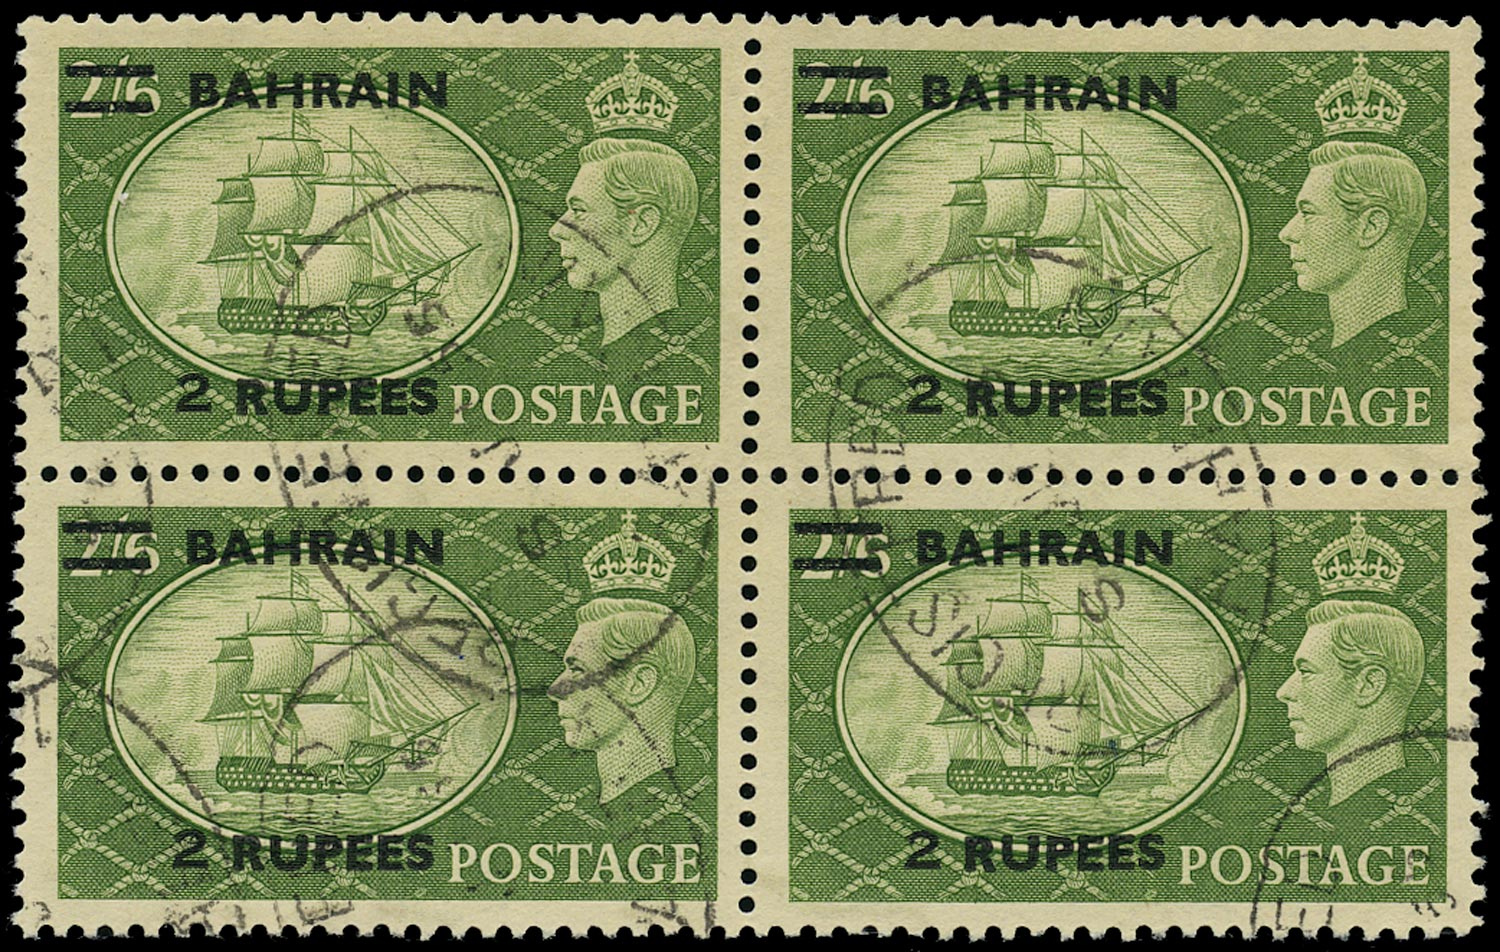 BAHRAIN 1950  SG77b Used KGVI 2r on 2s6d yellow-green type III surcharge